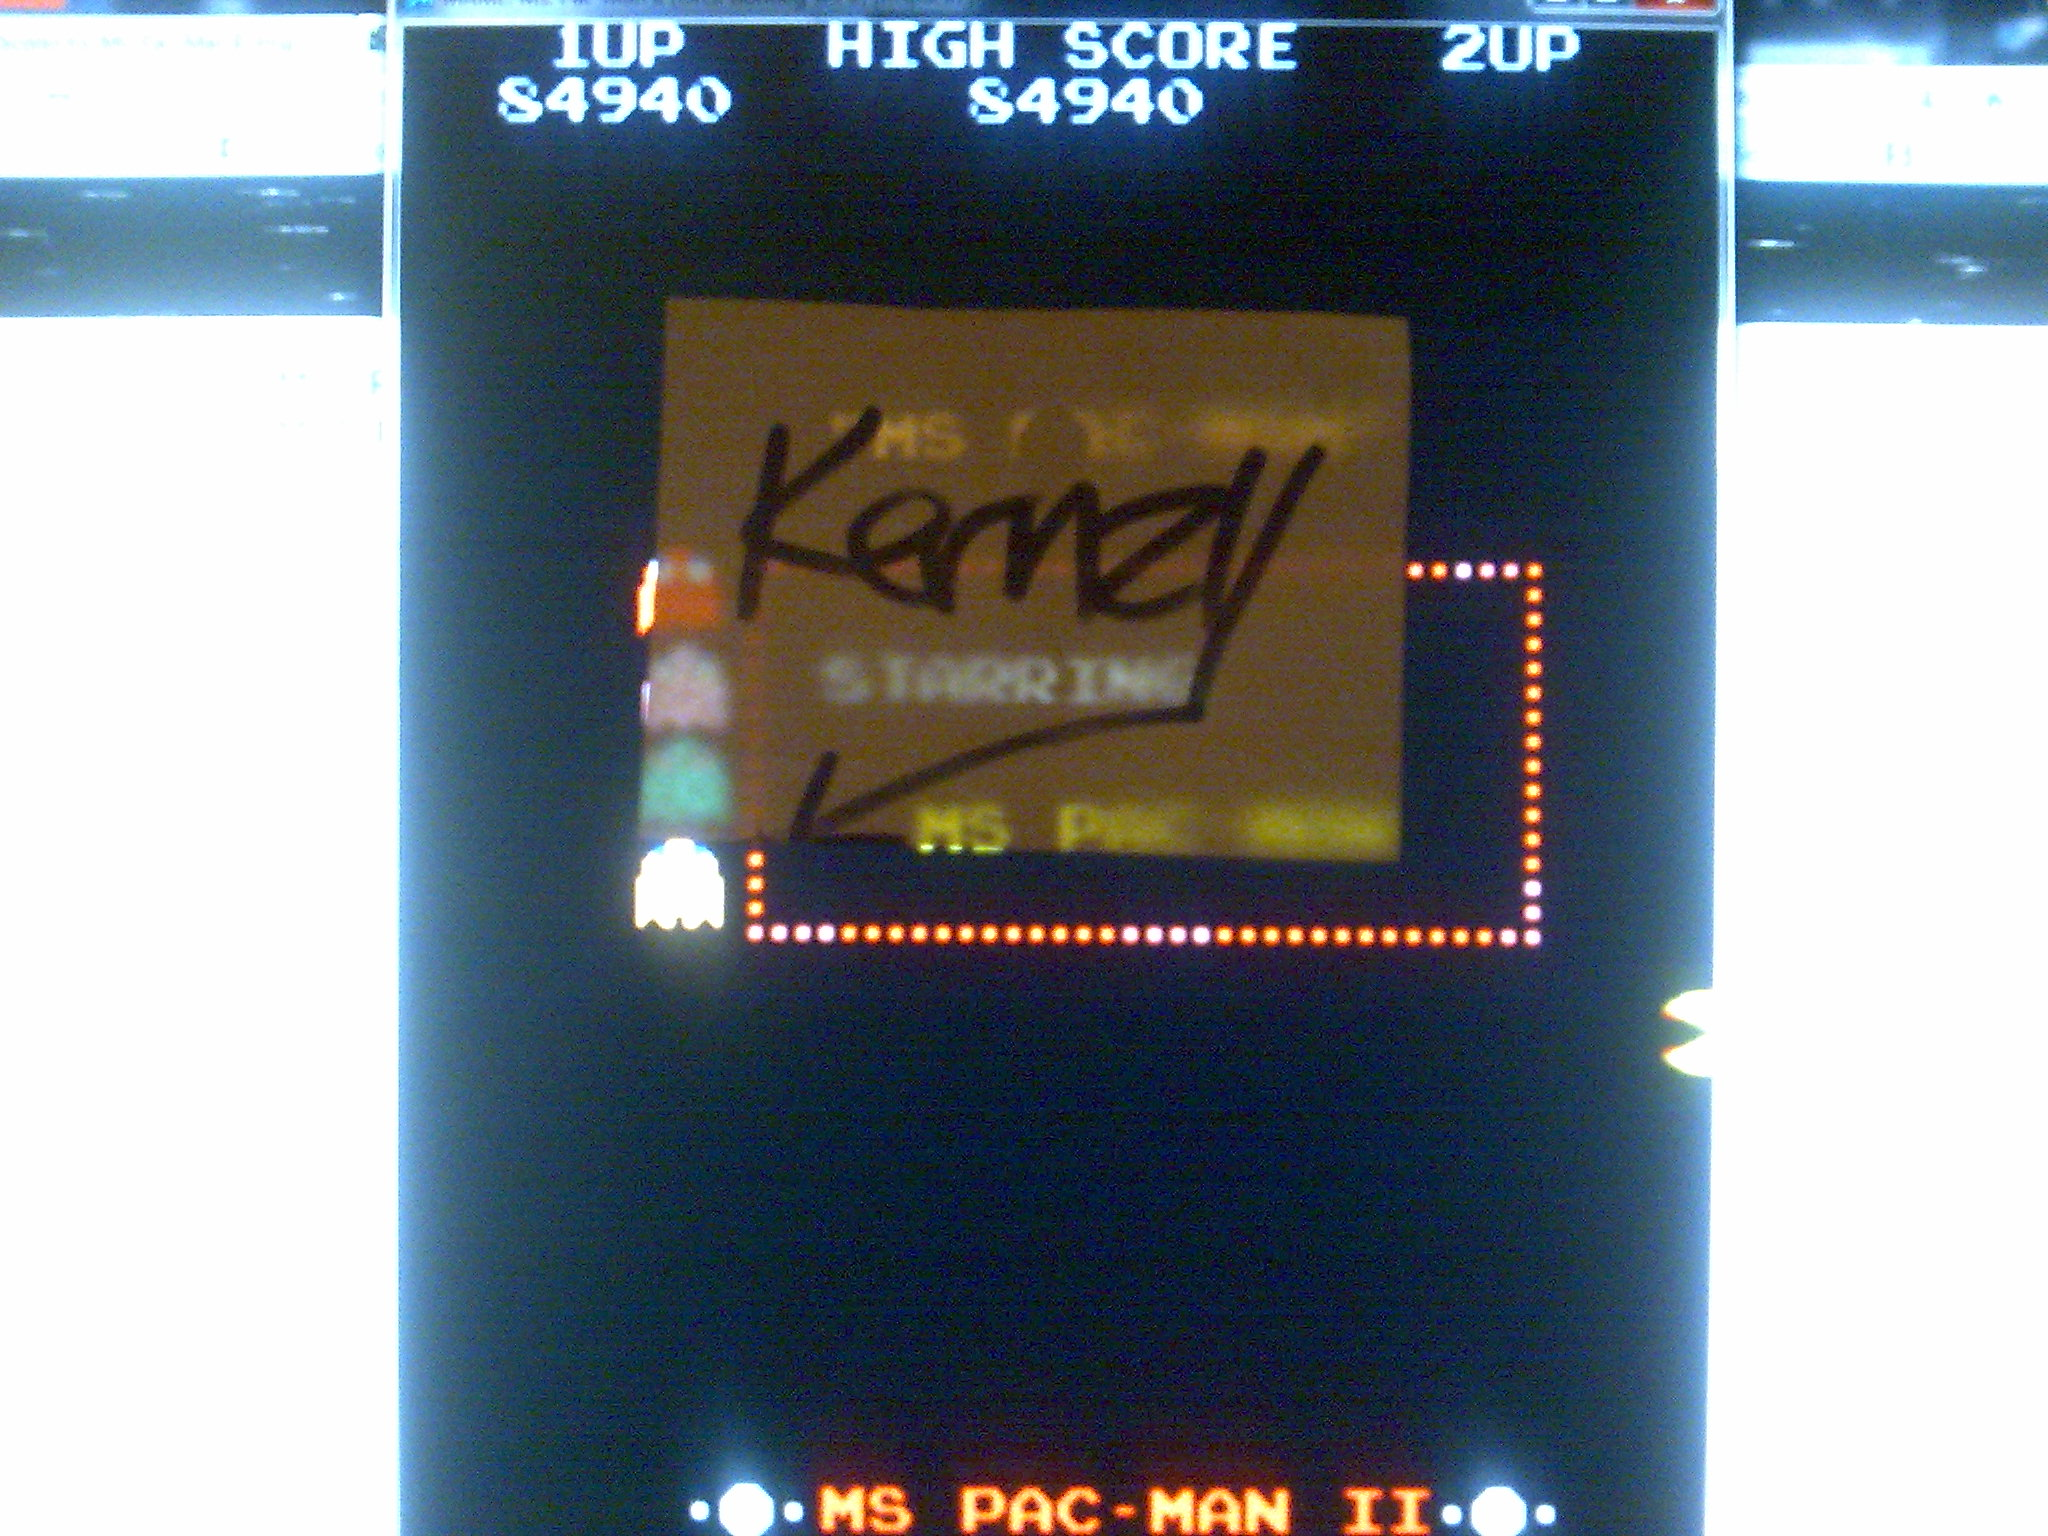 kernzy: Ms. Pac-Man II [mspacii2] (Arcade Emulated / M.A.M.E.) 84,940 points on 2014-08-25 18:20:57